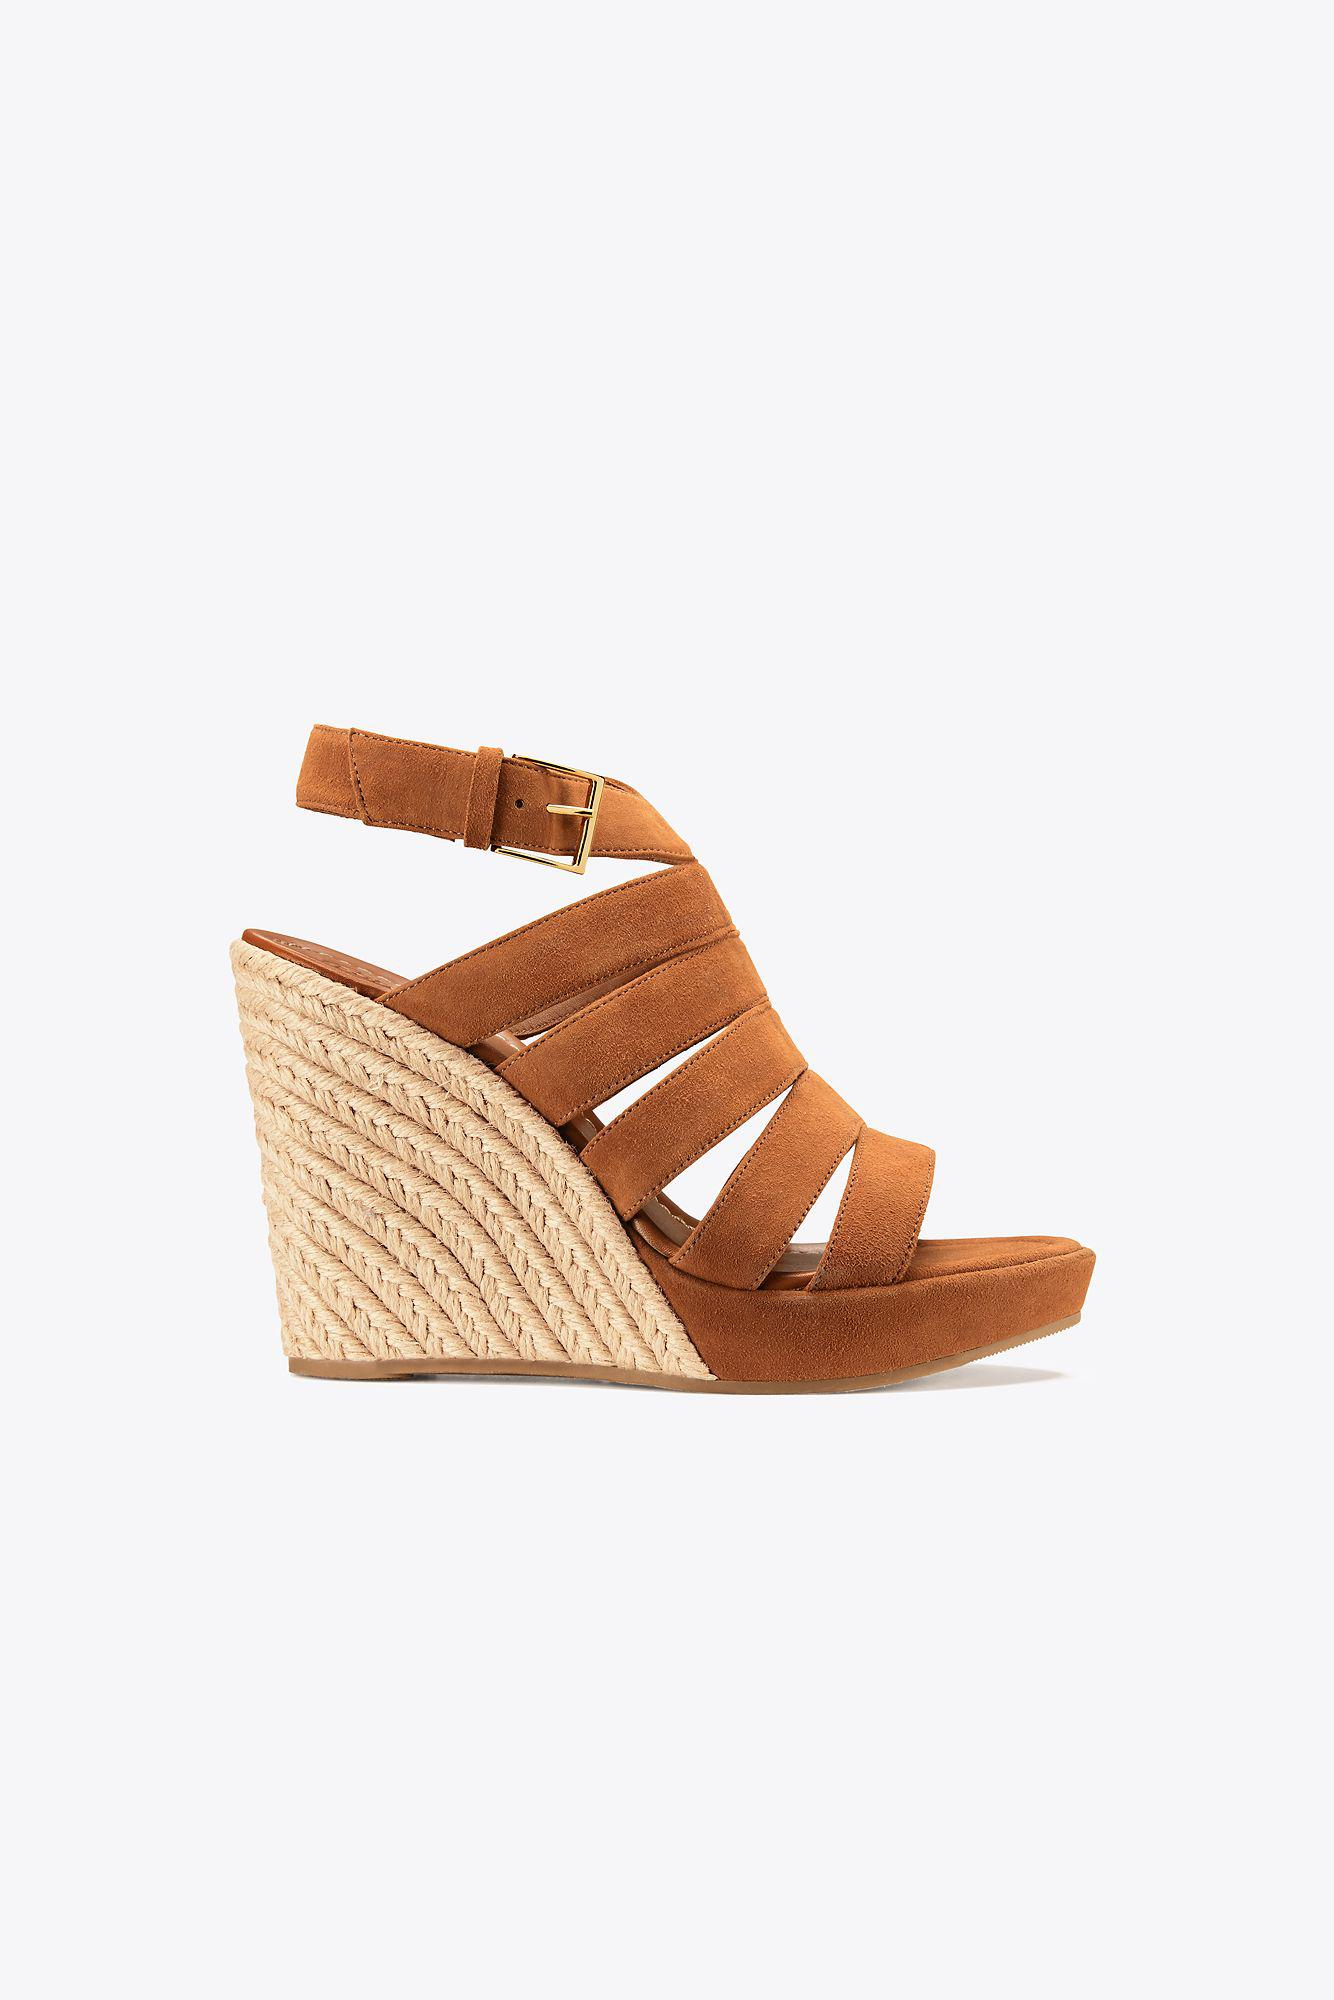 94bc307e26732 Tory Burch Bailey Multi-strap Wedge Espadrille in Brown - Lyst